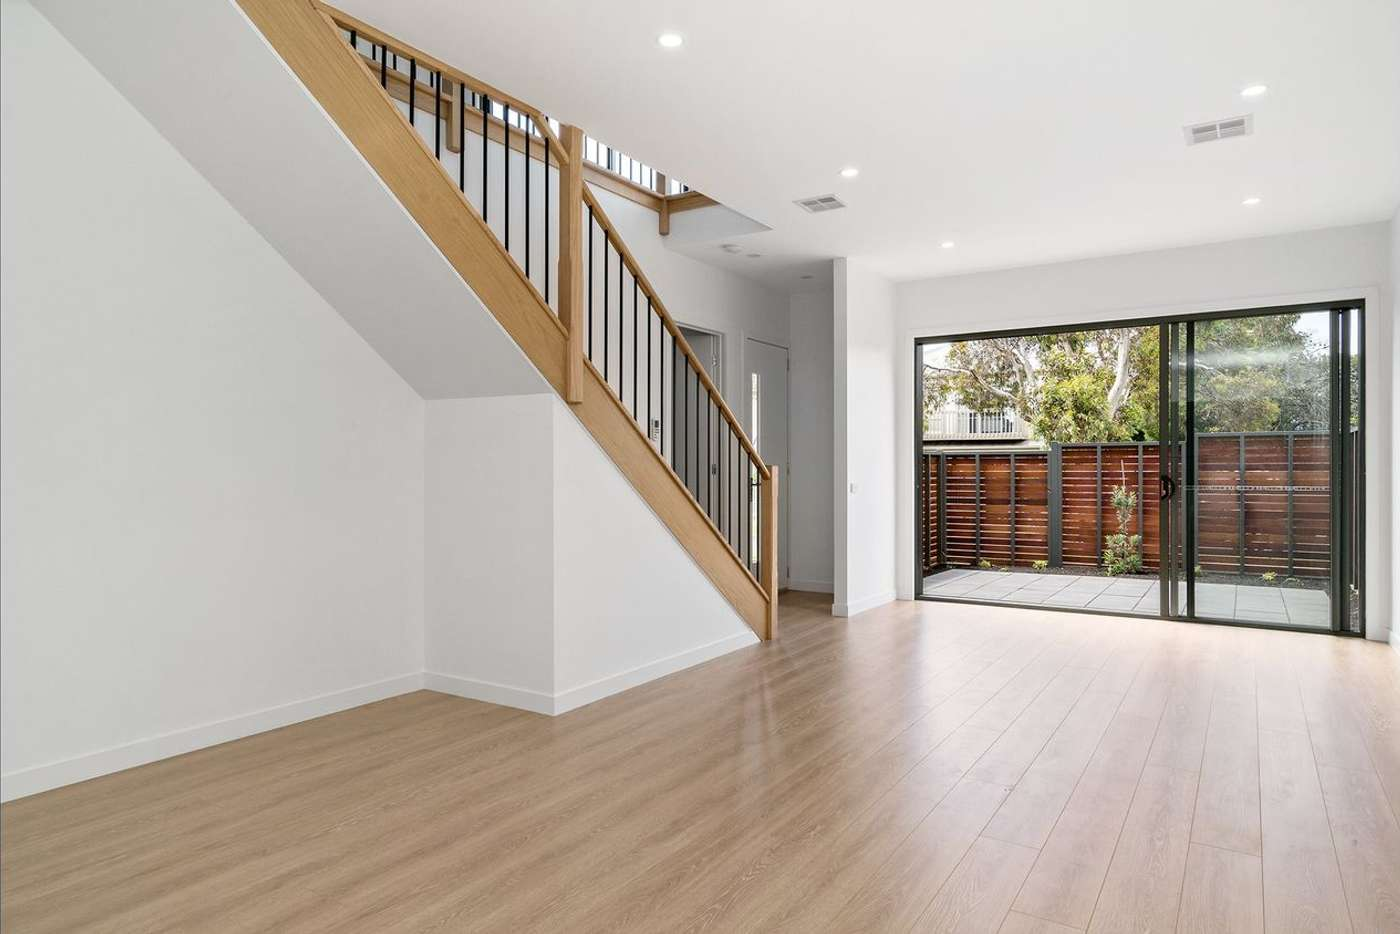 Fifth view of Homely townhouse listing, 1/20 Oakland Street, Mornington VIC 3931